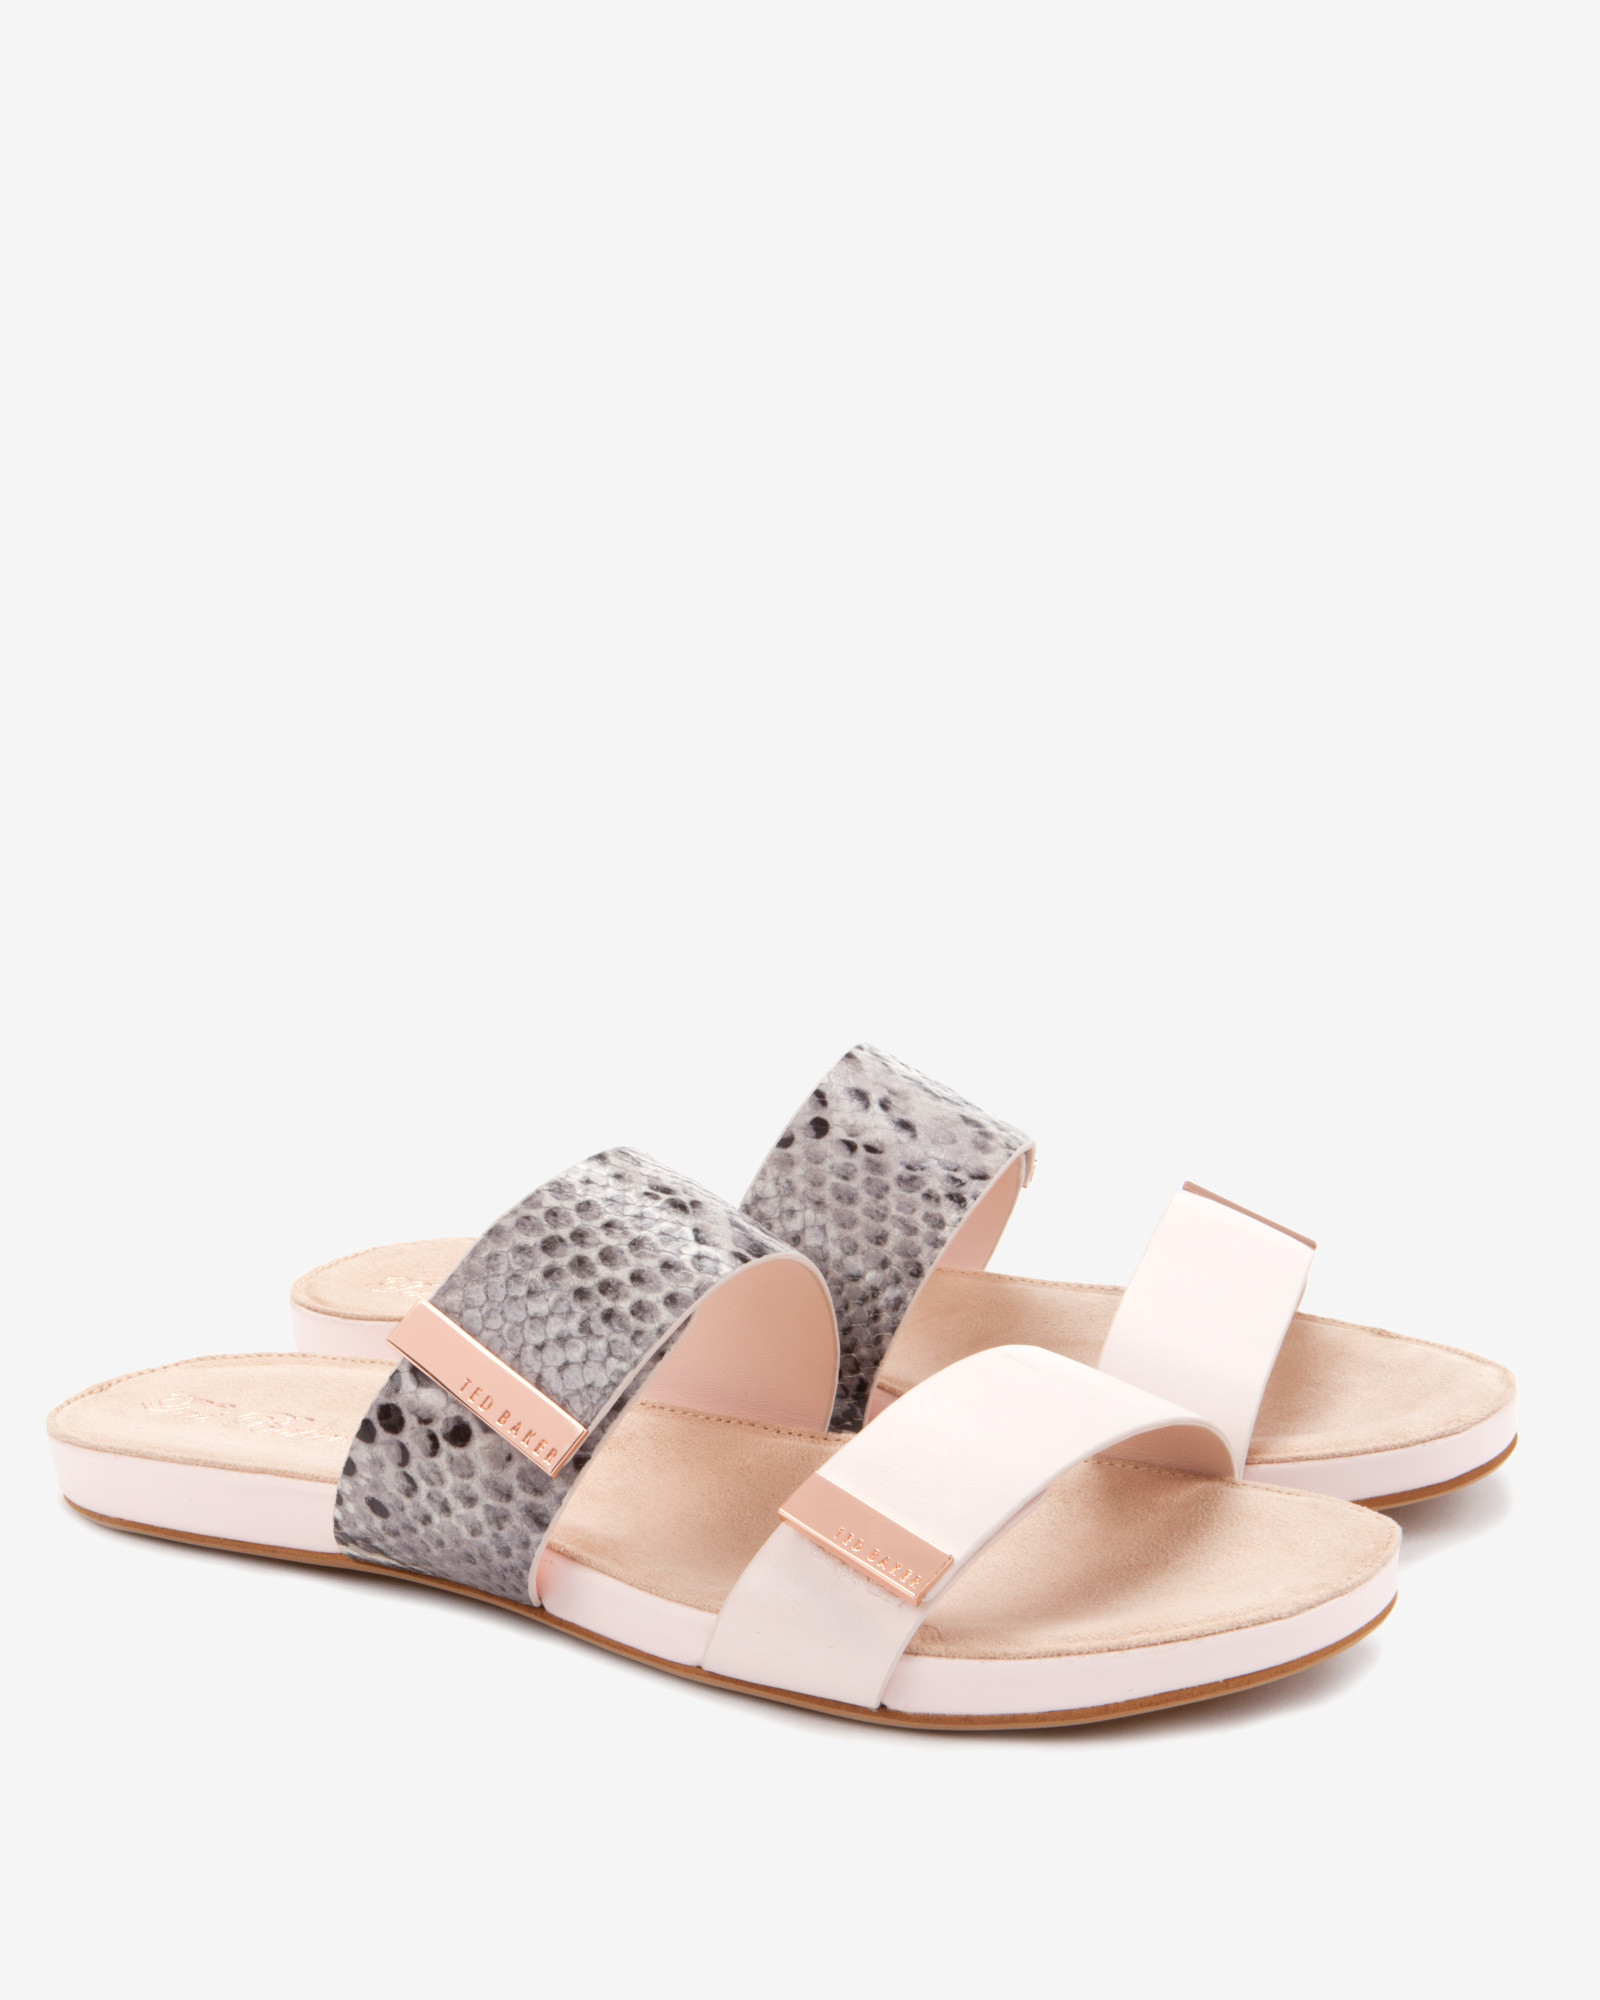 add15bedf4e7 Ted Baker Leather Slider Sandals in Gray - Lyst